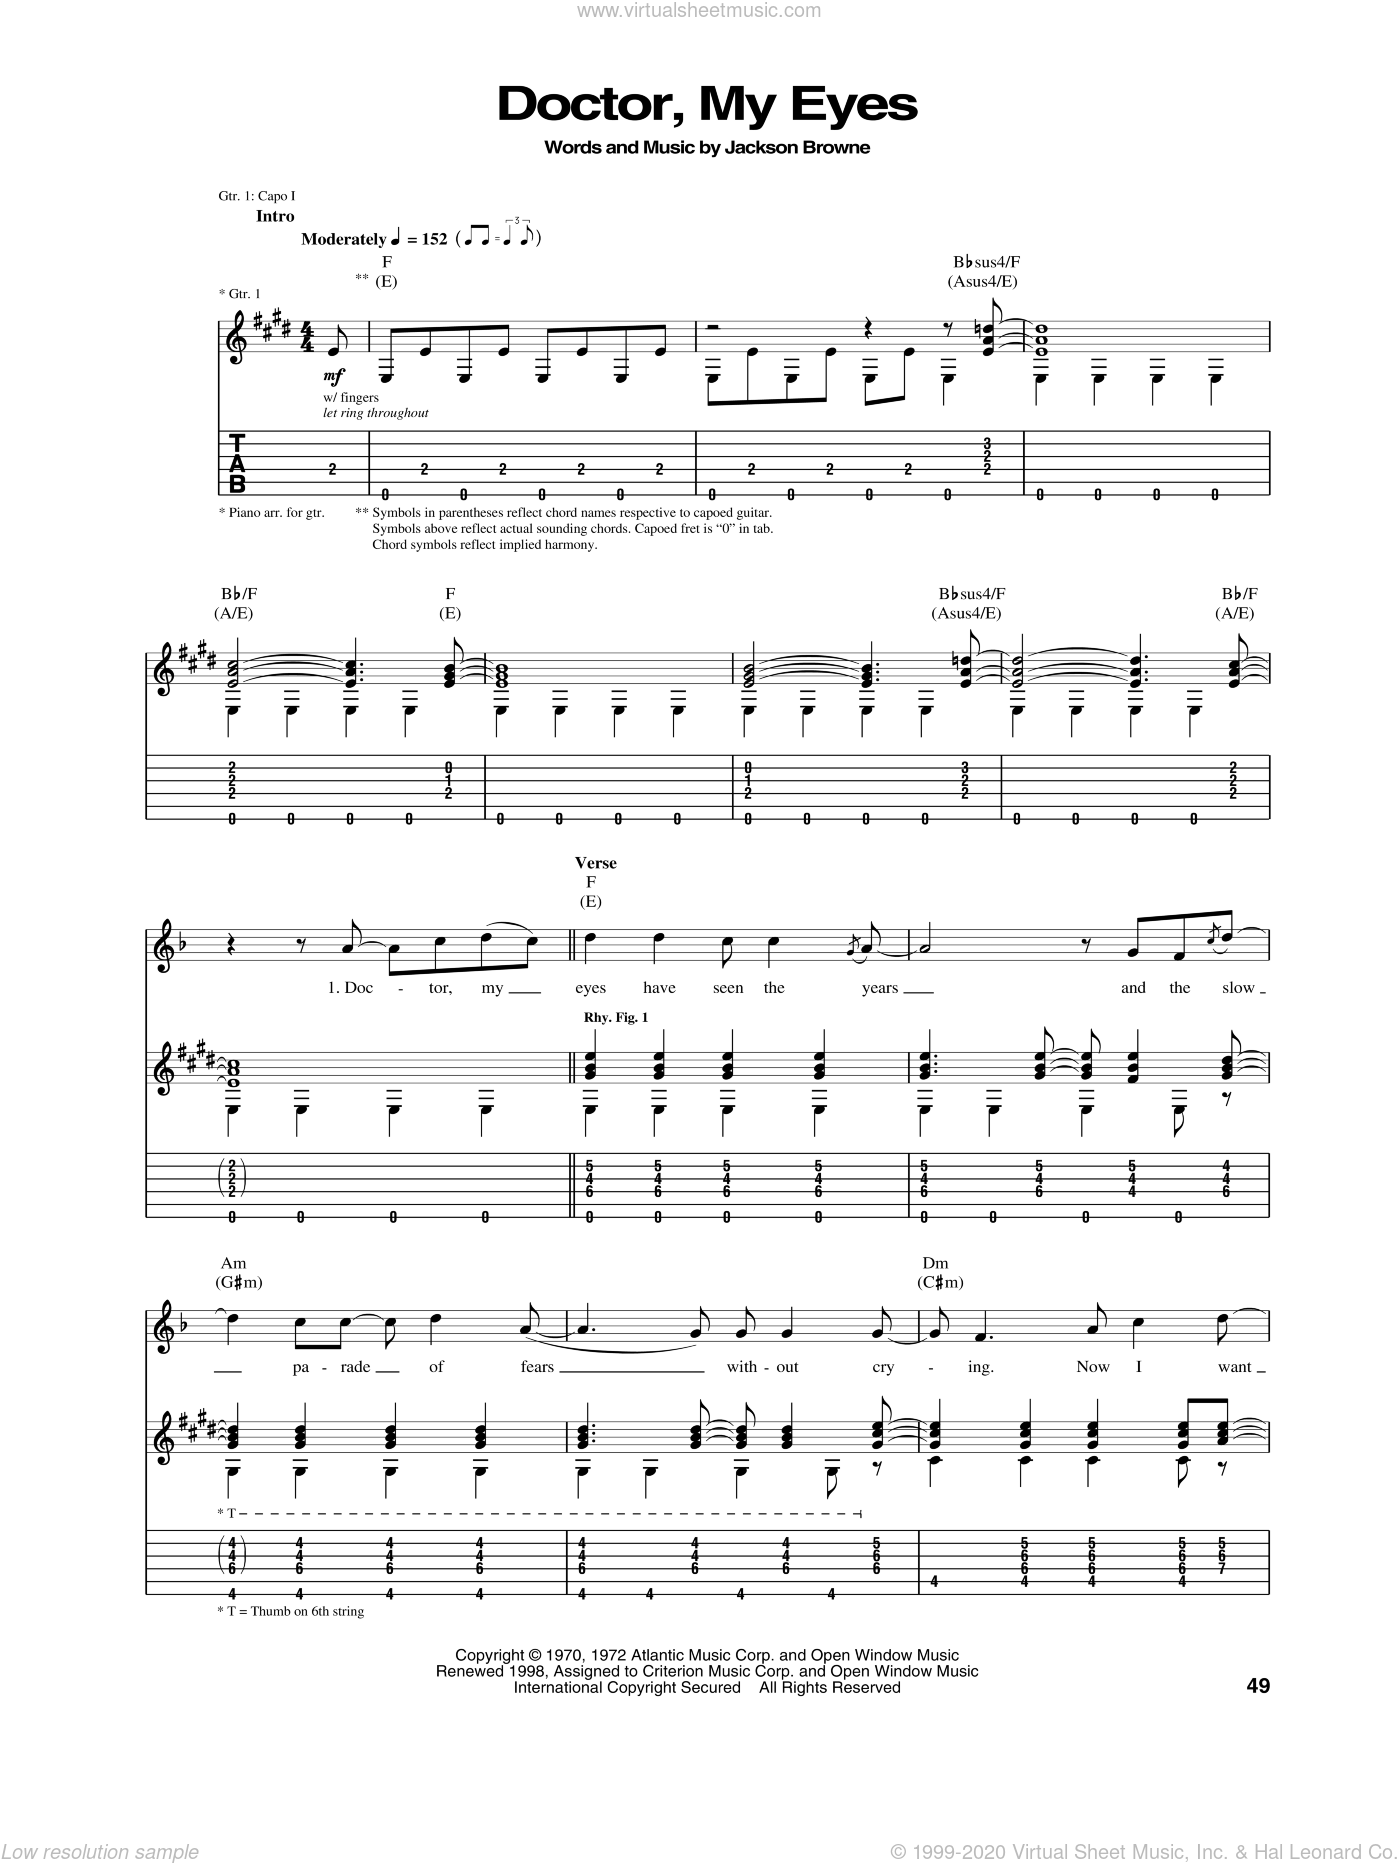 Doctor, My Eyes sheet music for guitar (tablature) by Jackson Browne, intermediate skill level